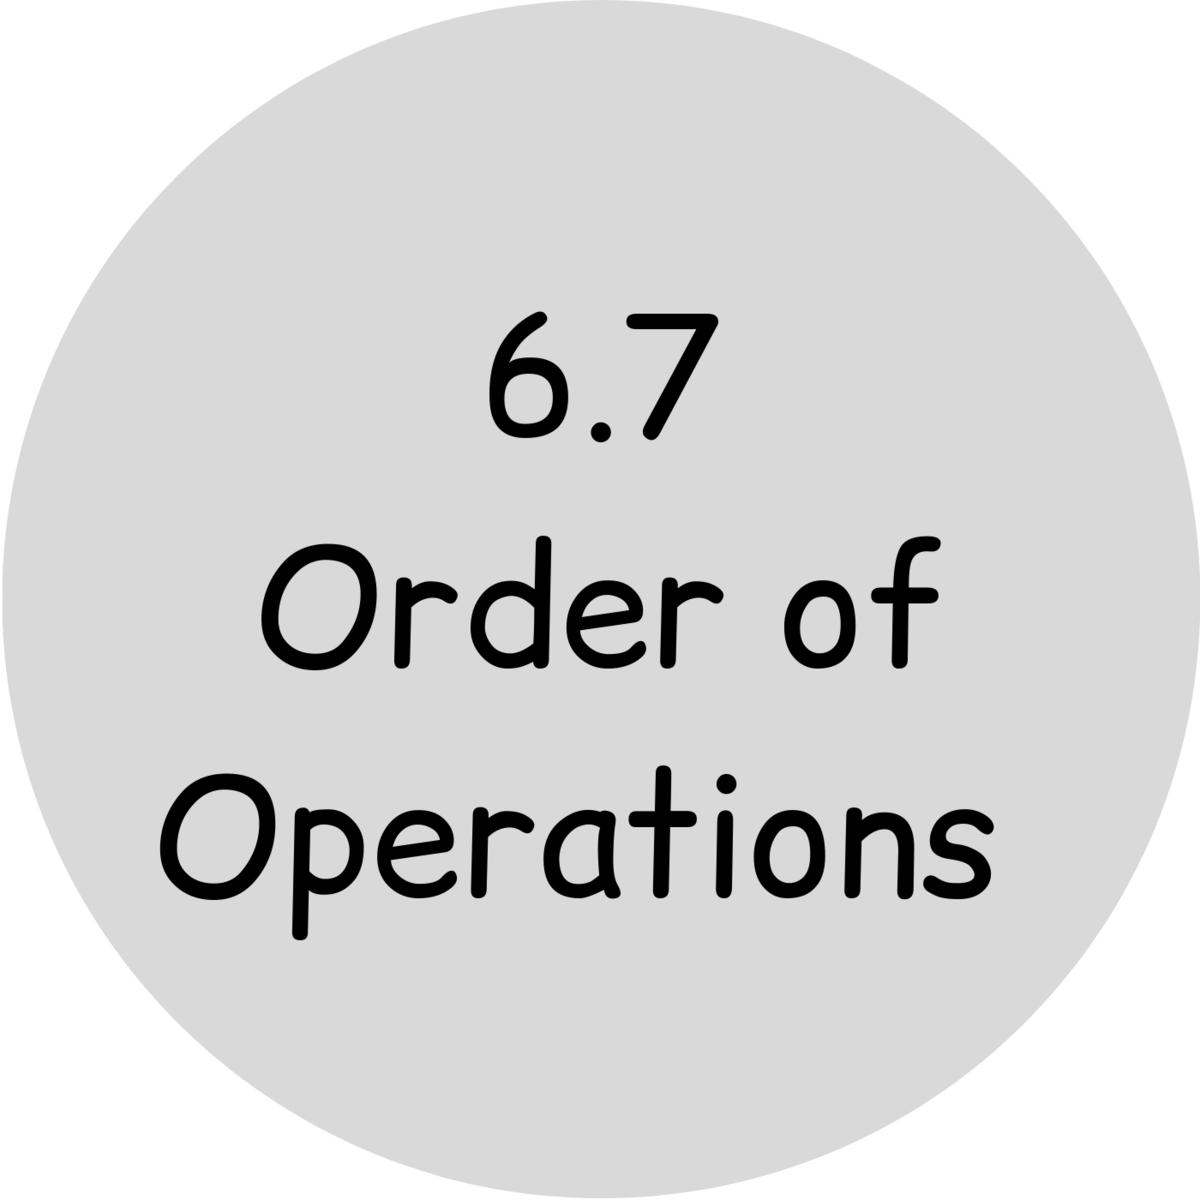 6.7 order of operations